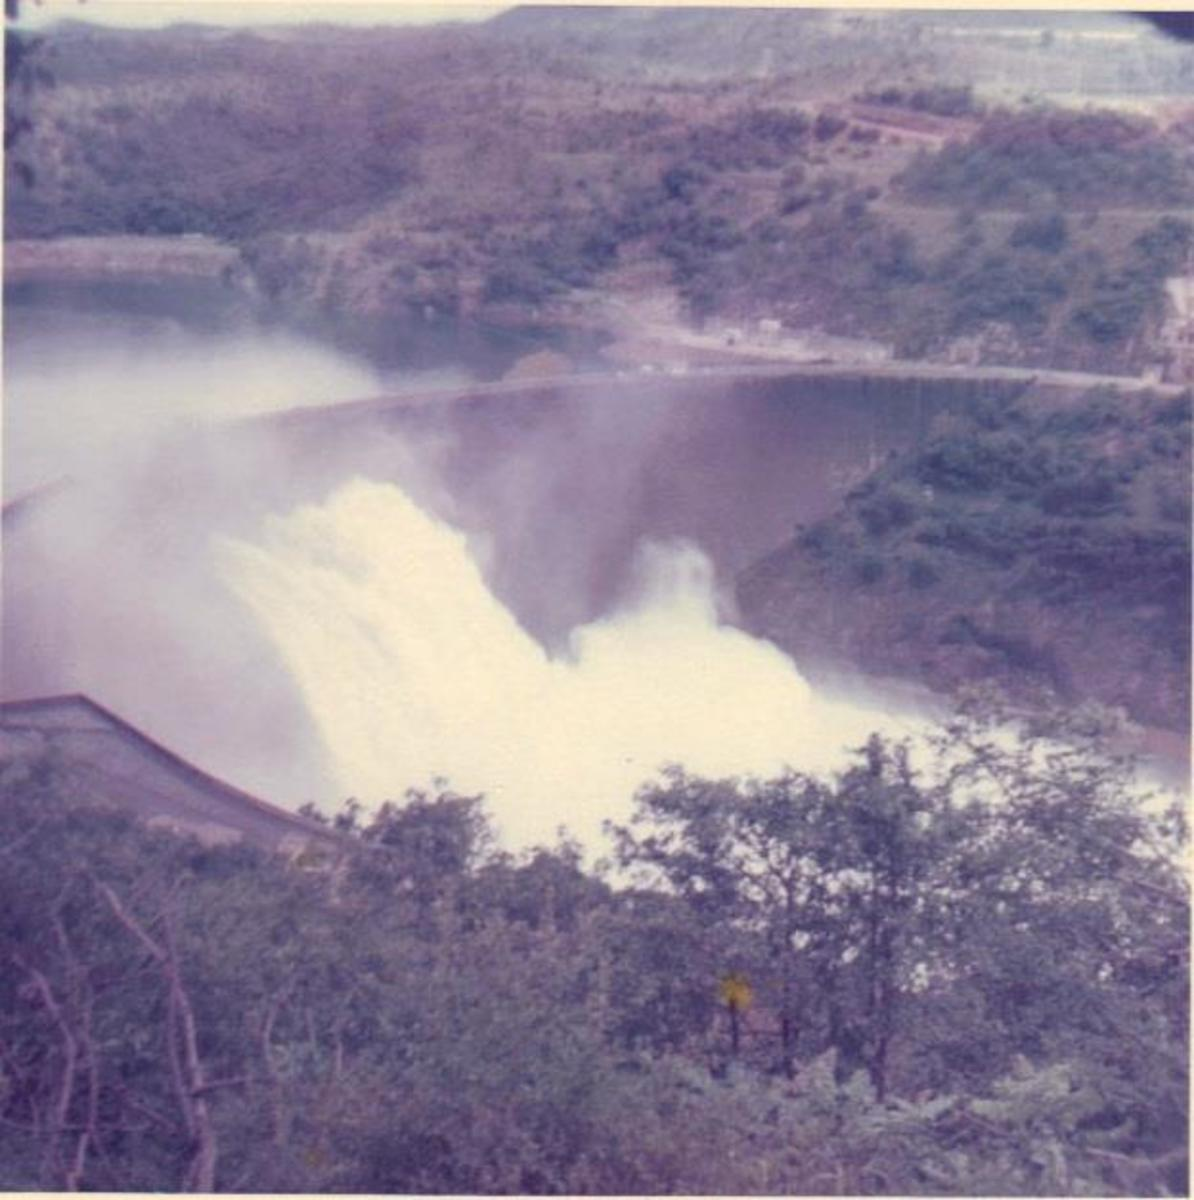 Kariba dam wall with all four turbine gates open